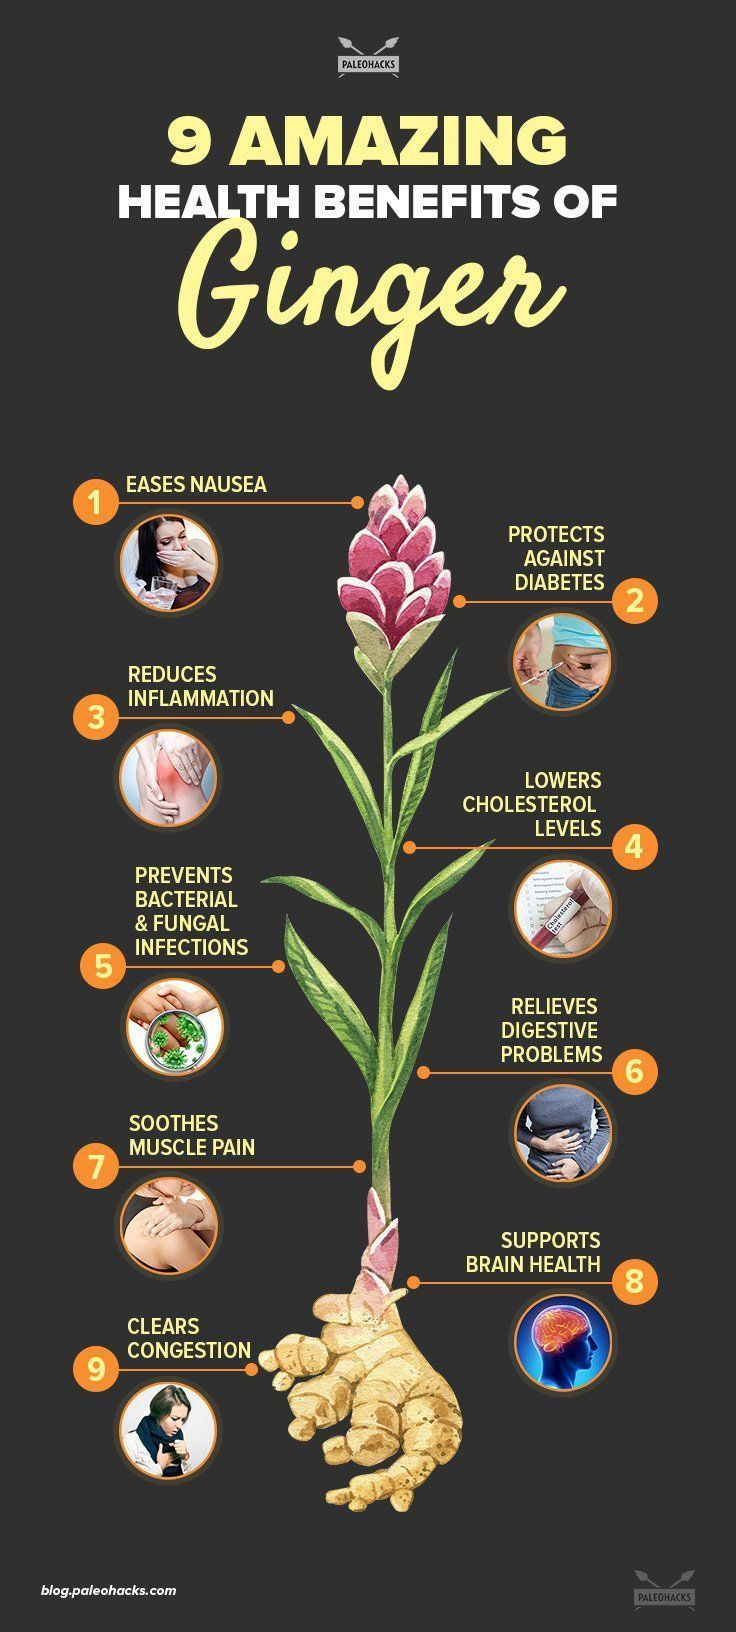 When it comes to superfoods, ginger ranks high on the list thanks to its powerful health benefits. For the full article visit us here: http://paleo.co/gingerbenefit